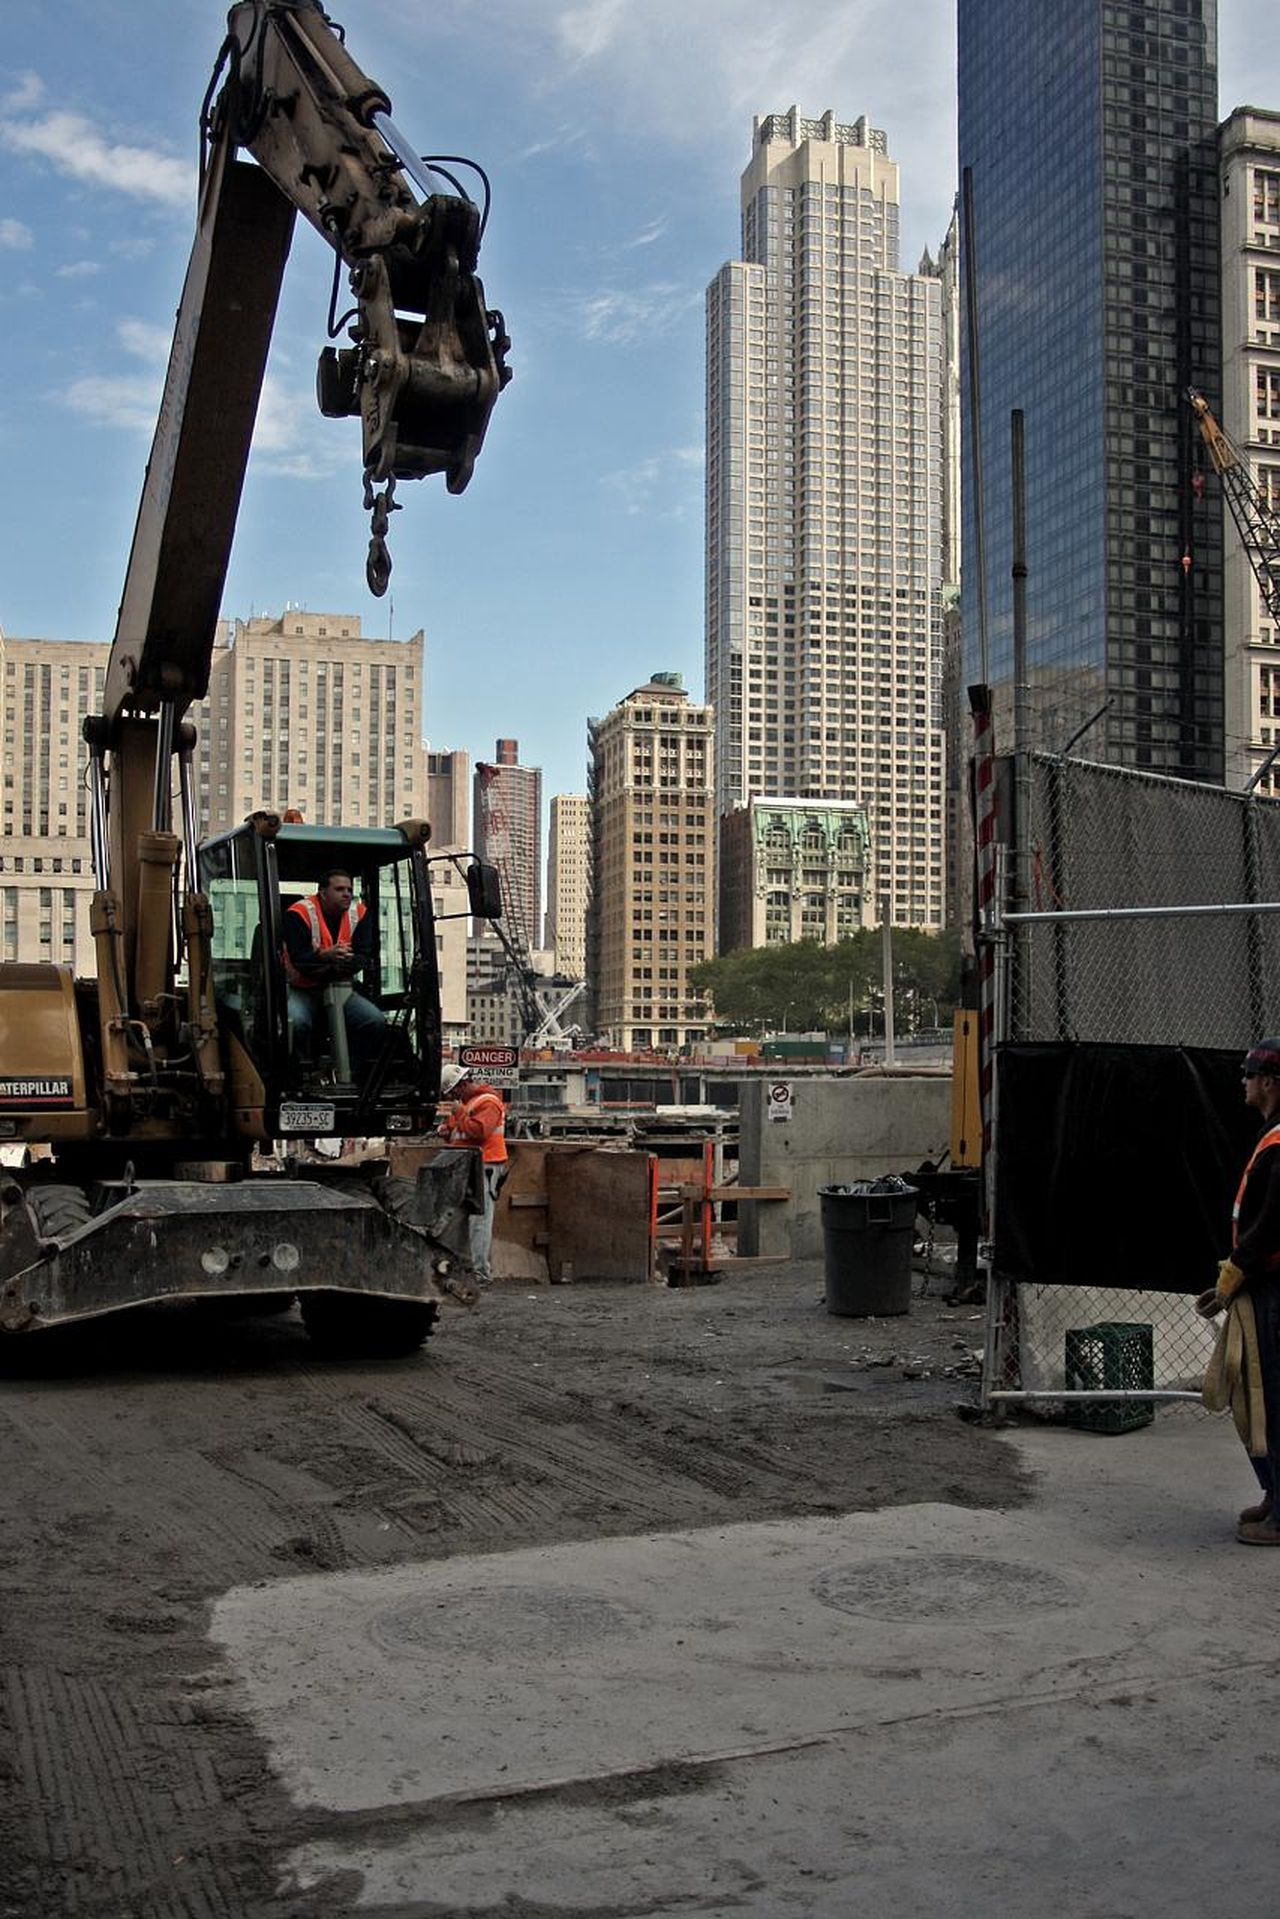 2008 City Construction Machinery Construction Site Manhattan New York Outdoors Skyscapers